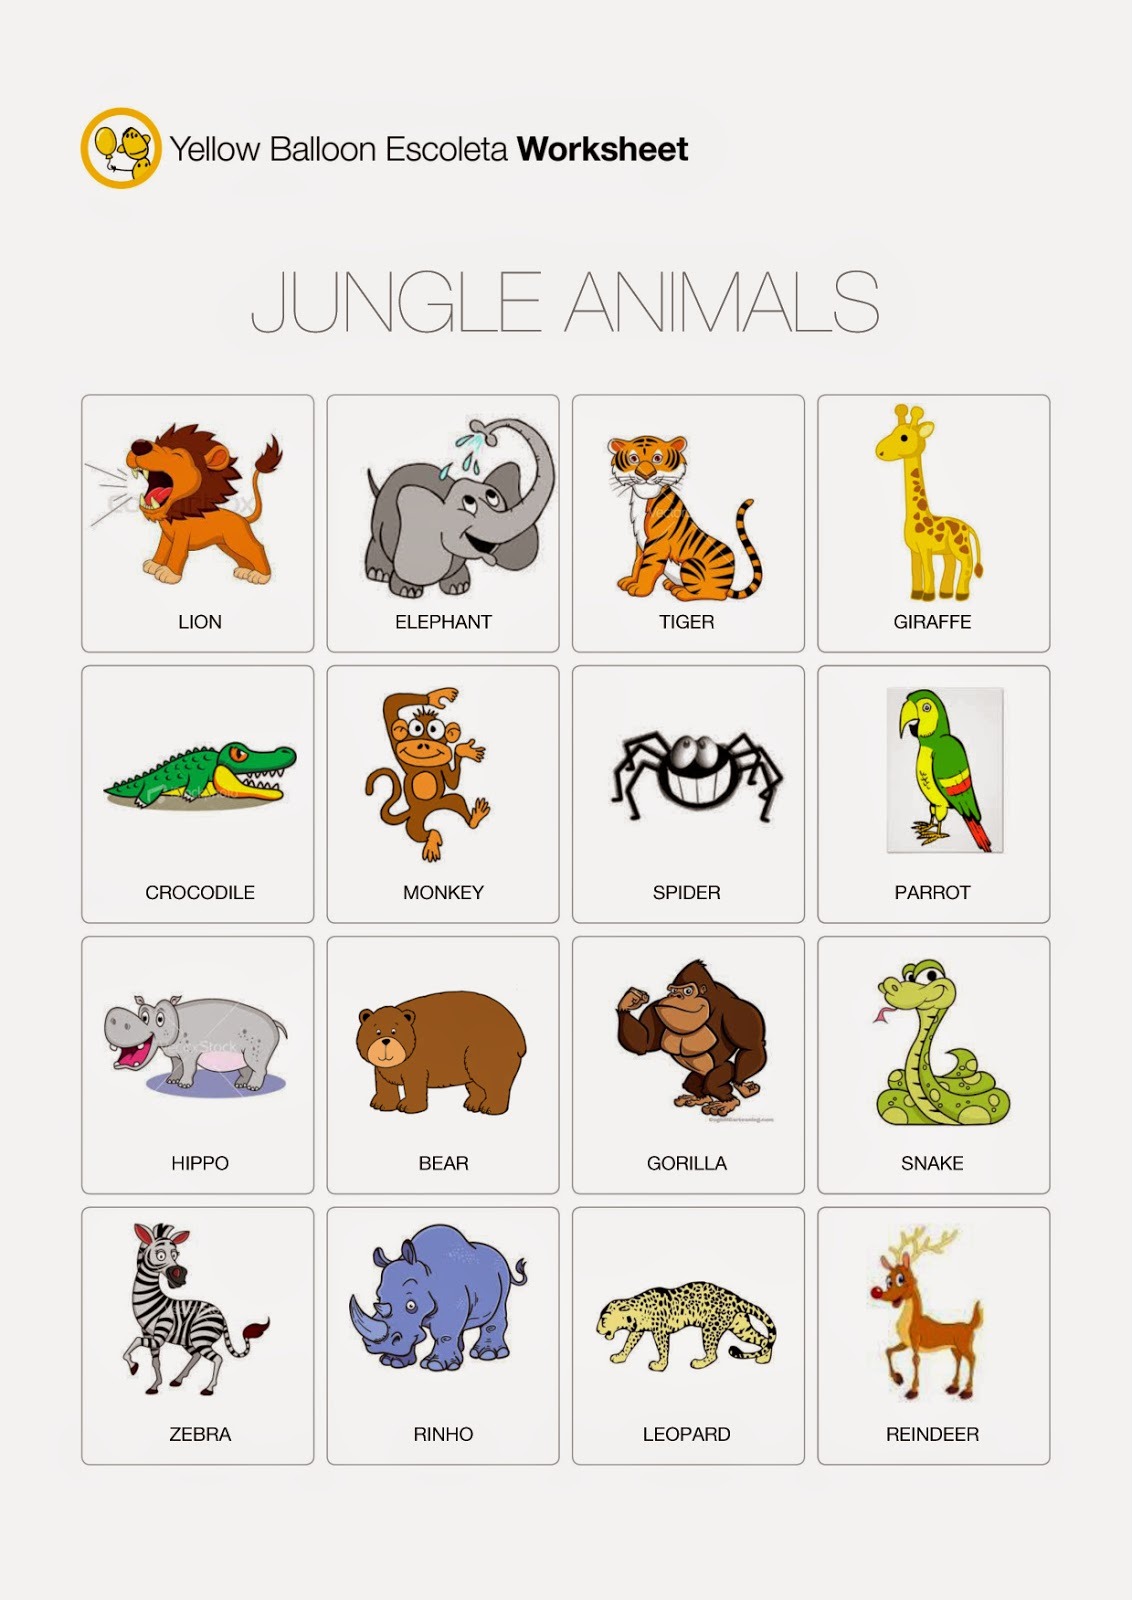 Jungle Animals Worksheet : Yellow balloon escoleta jungle animals worksheet